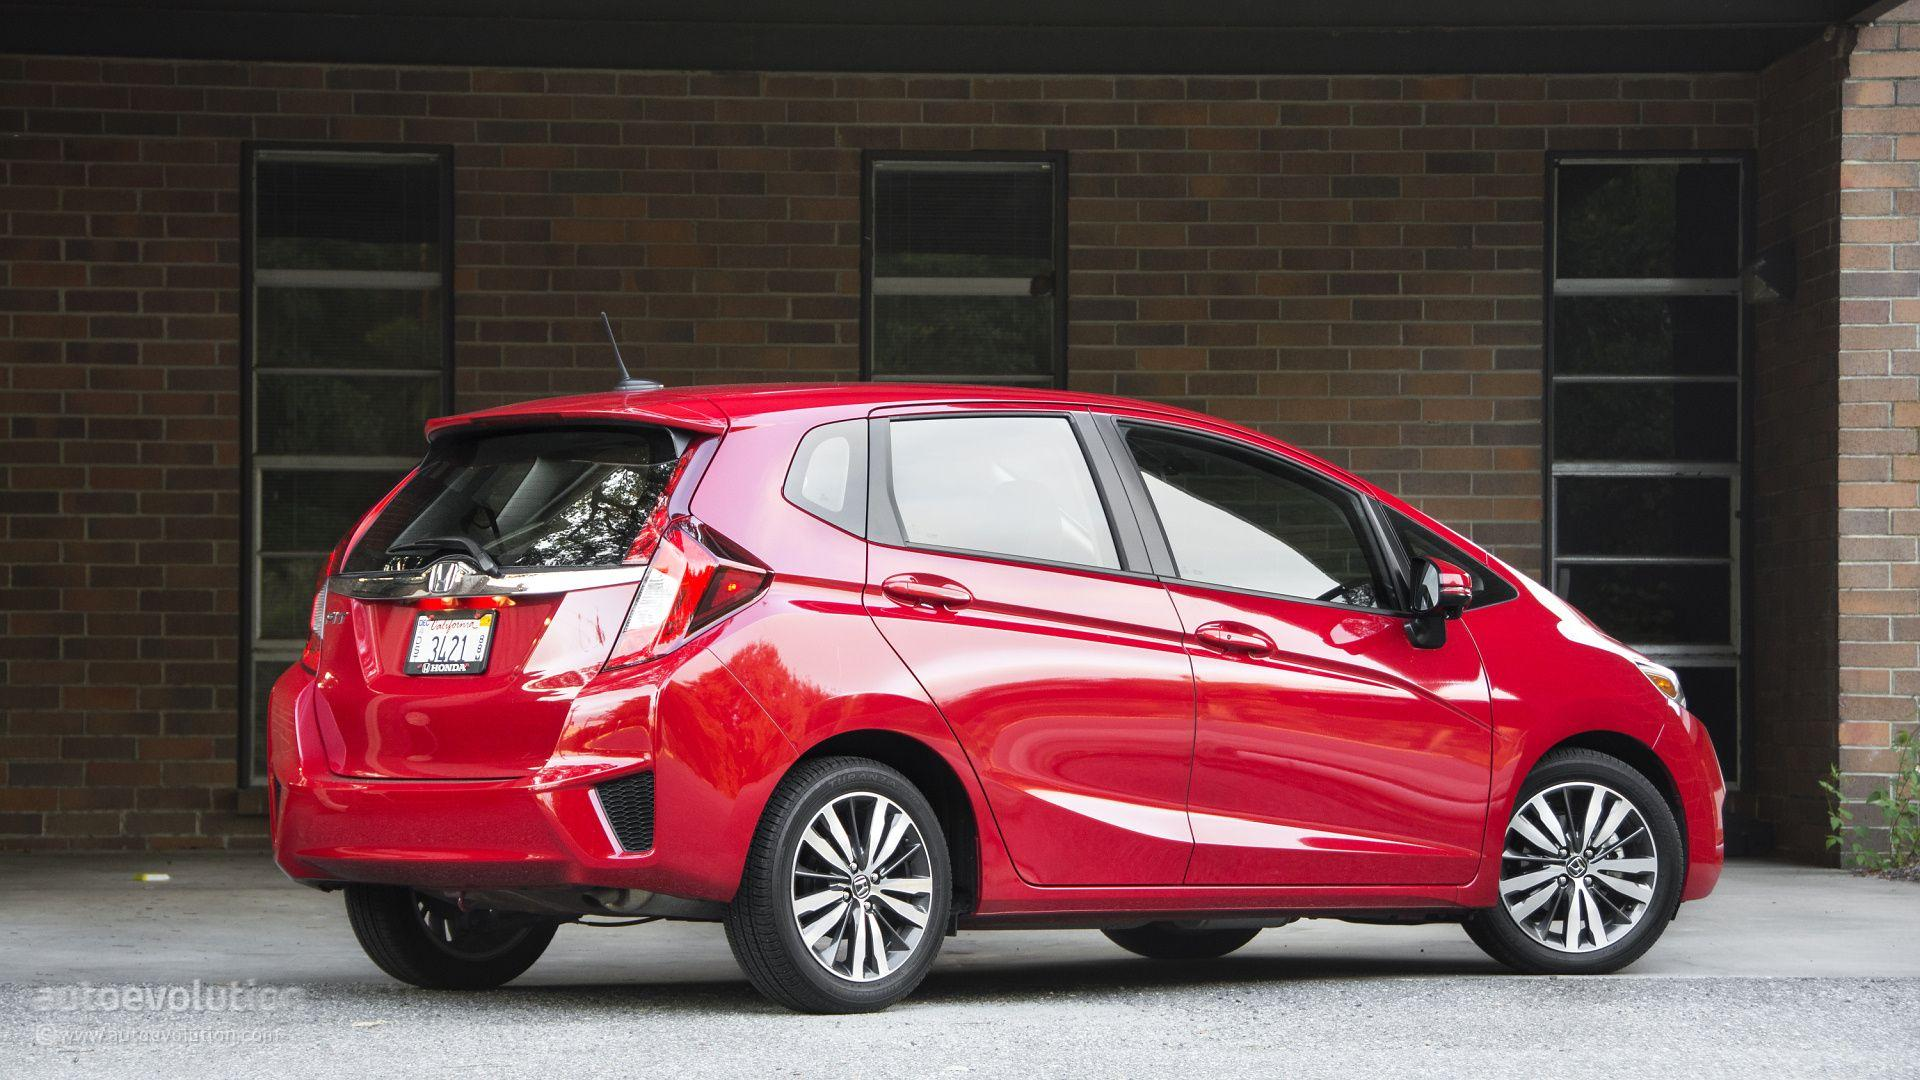 2015 Honda Fit Wallpapers: Fit for a Subcompact King - autoevolution